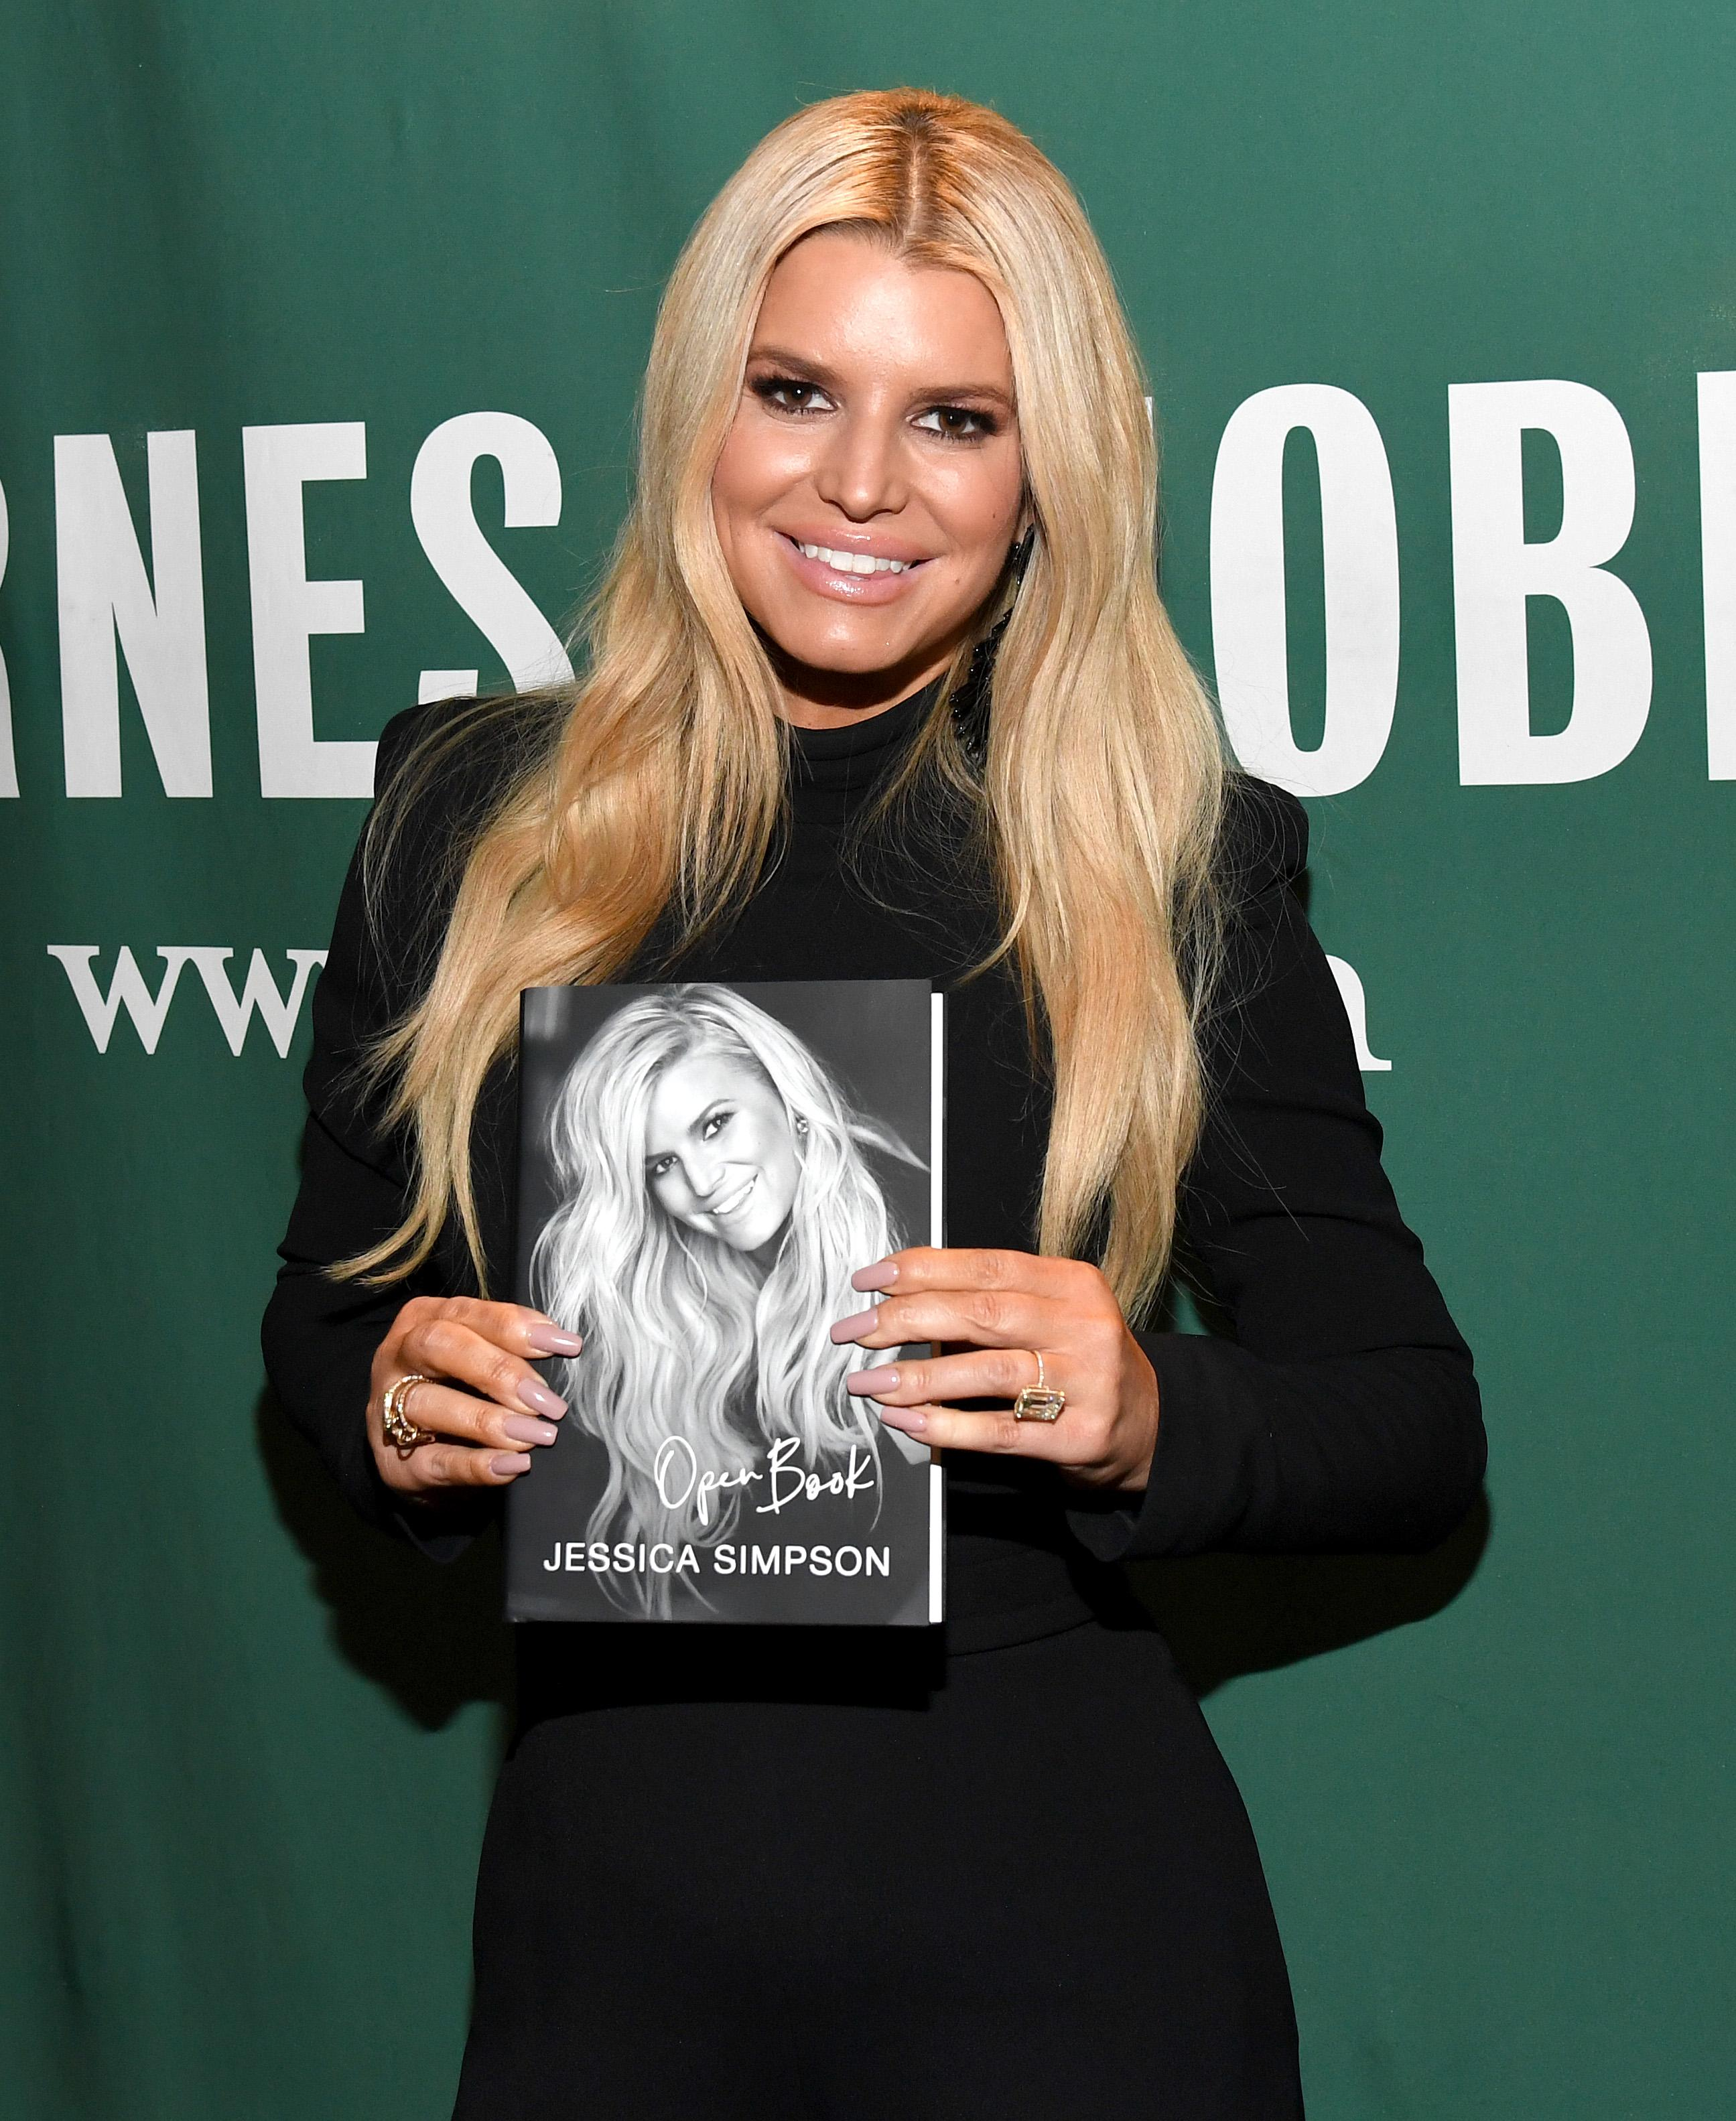 jessica-simpson-new-songs-open-book-1580930007101.jpg